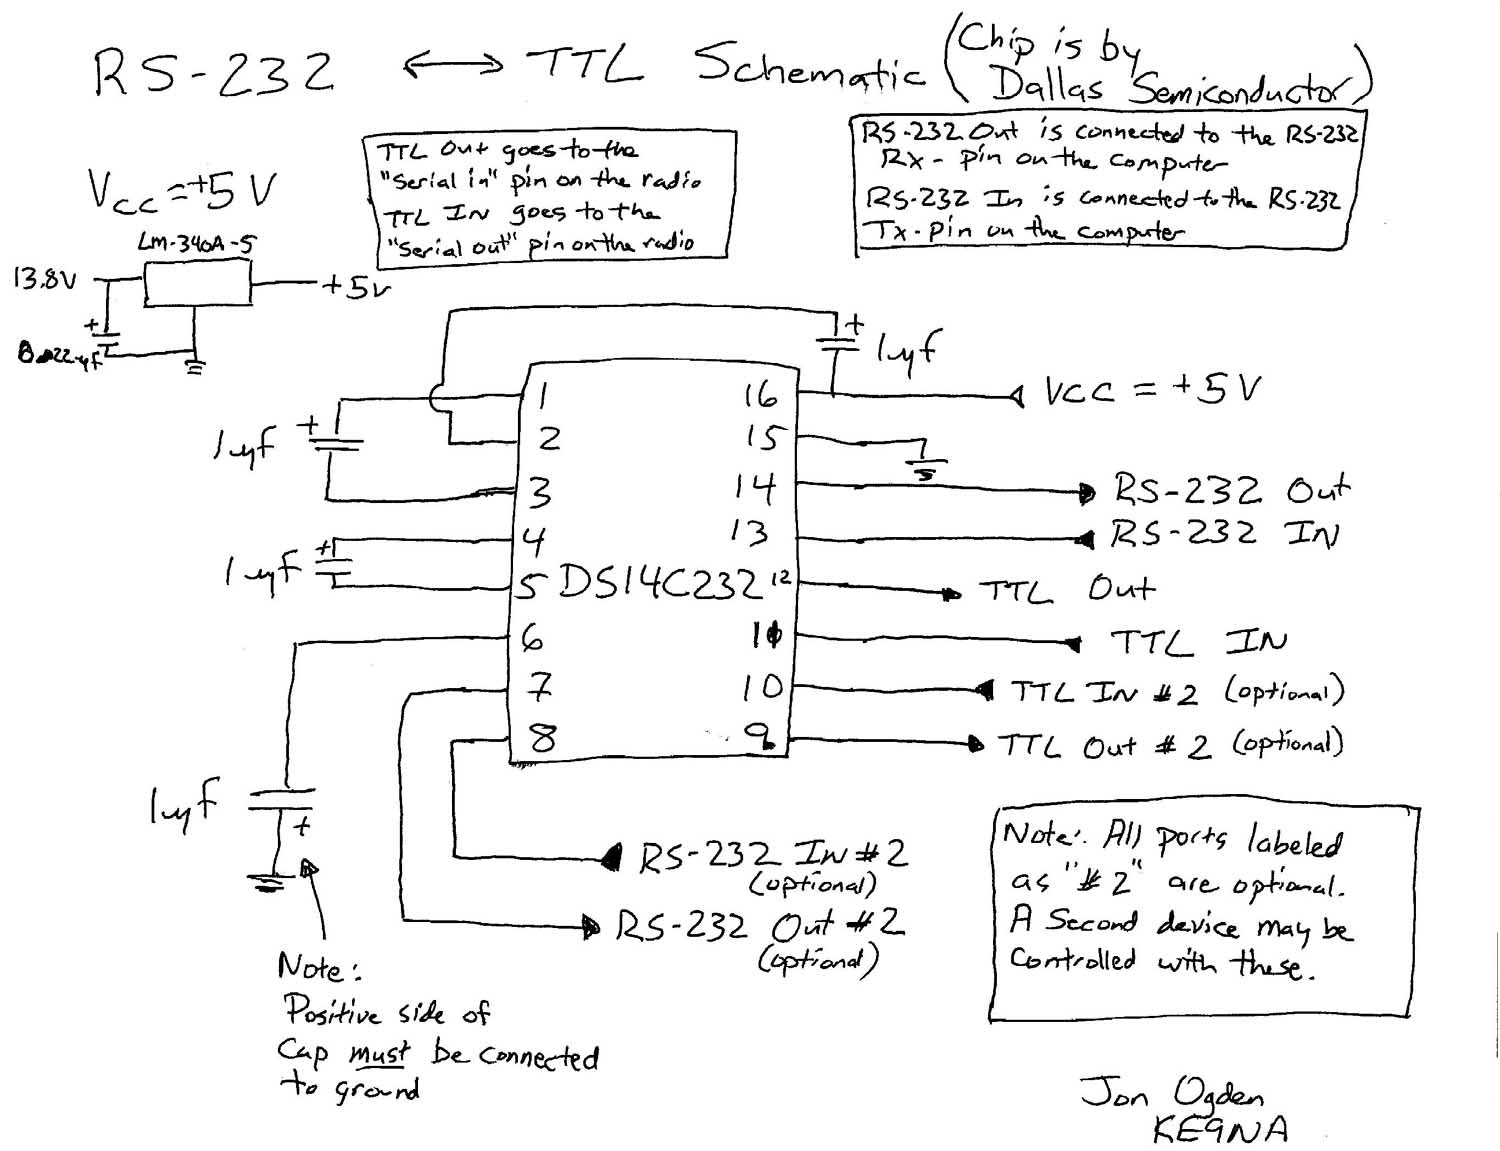 The Chip is by NATIONAL SEMICONDUCTOR not Dallas. It will be corrected the  next time I can provide a revised schematic.